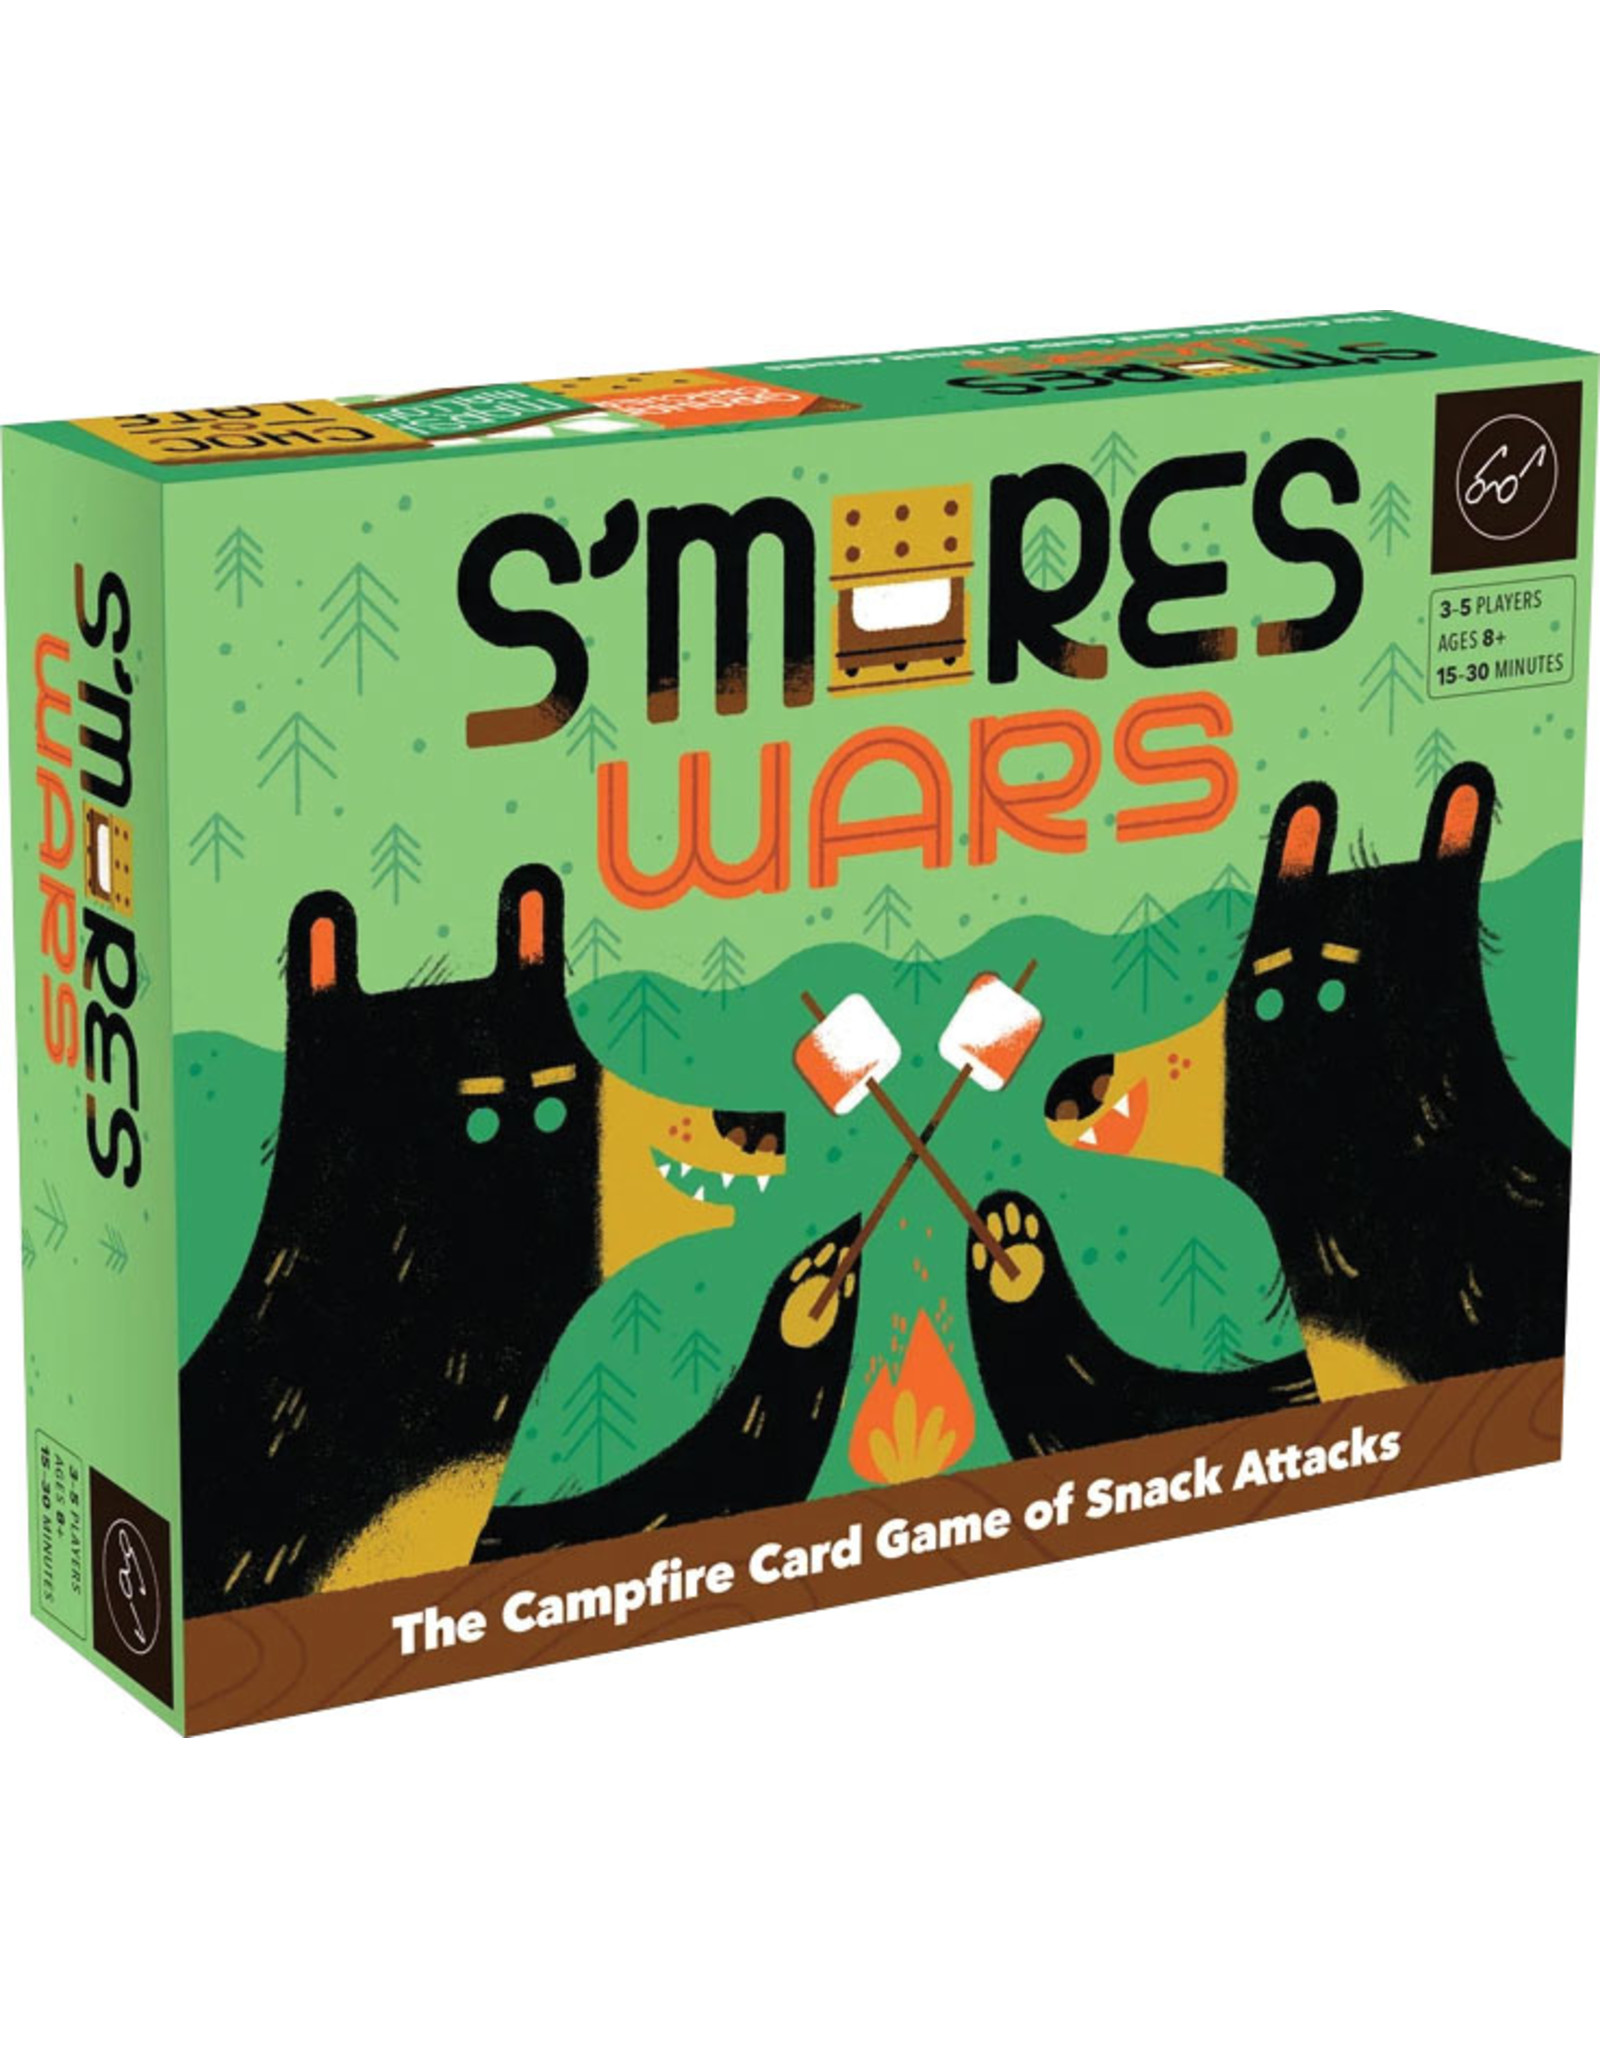 Chronicle Books S`mores Wars: The Campfire Card Game of Snack Attacks